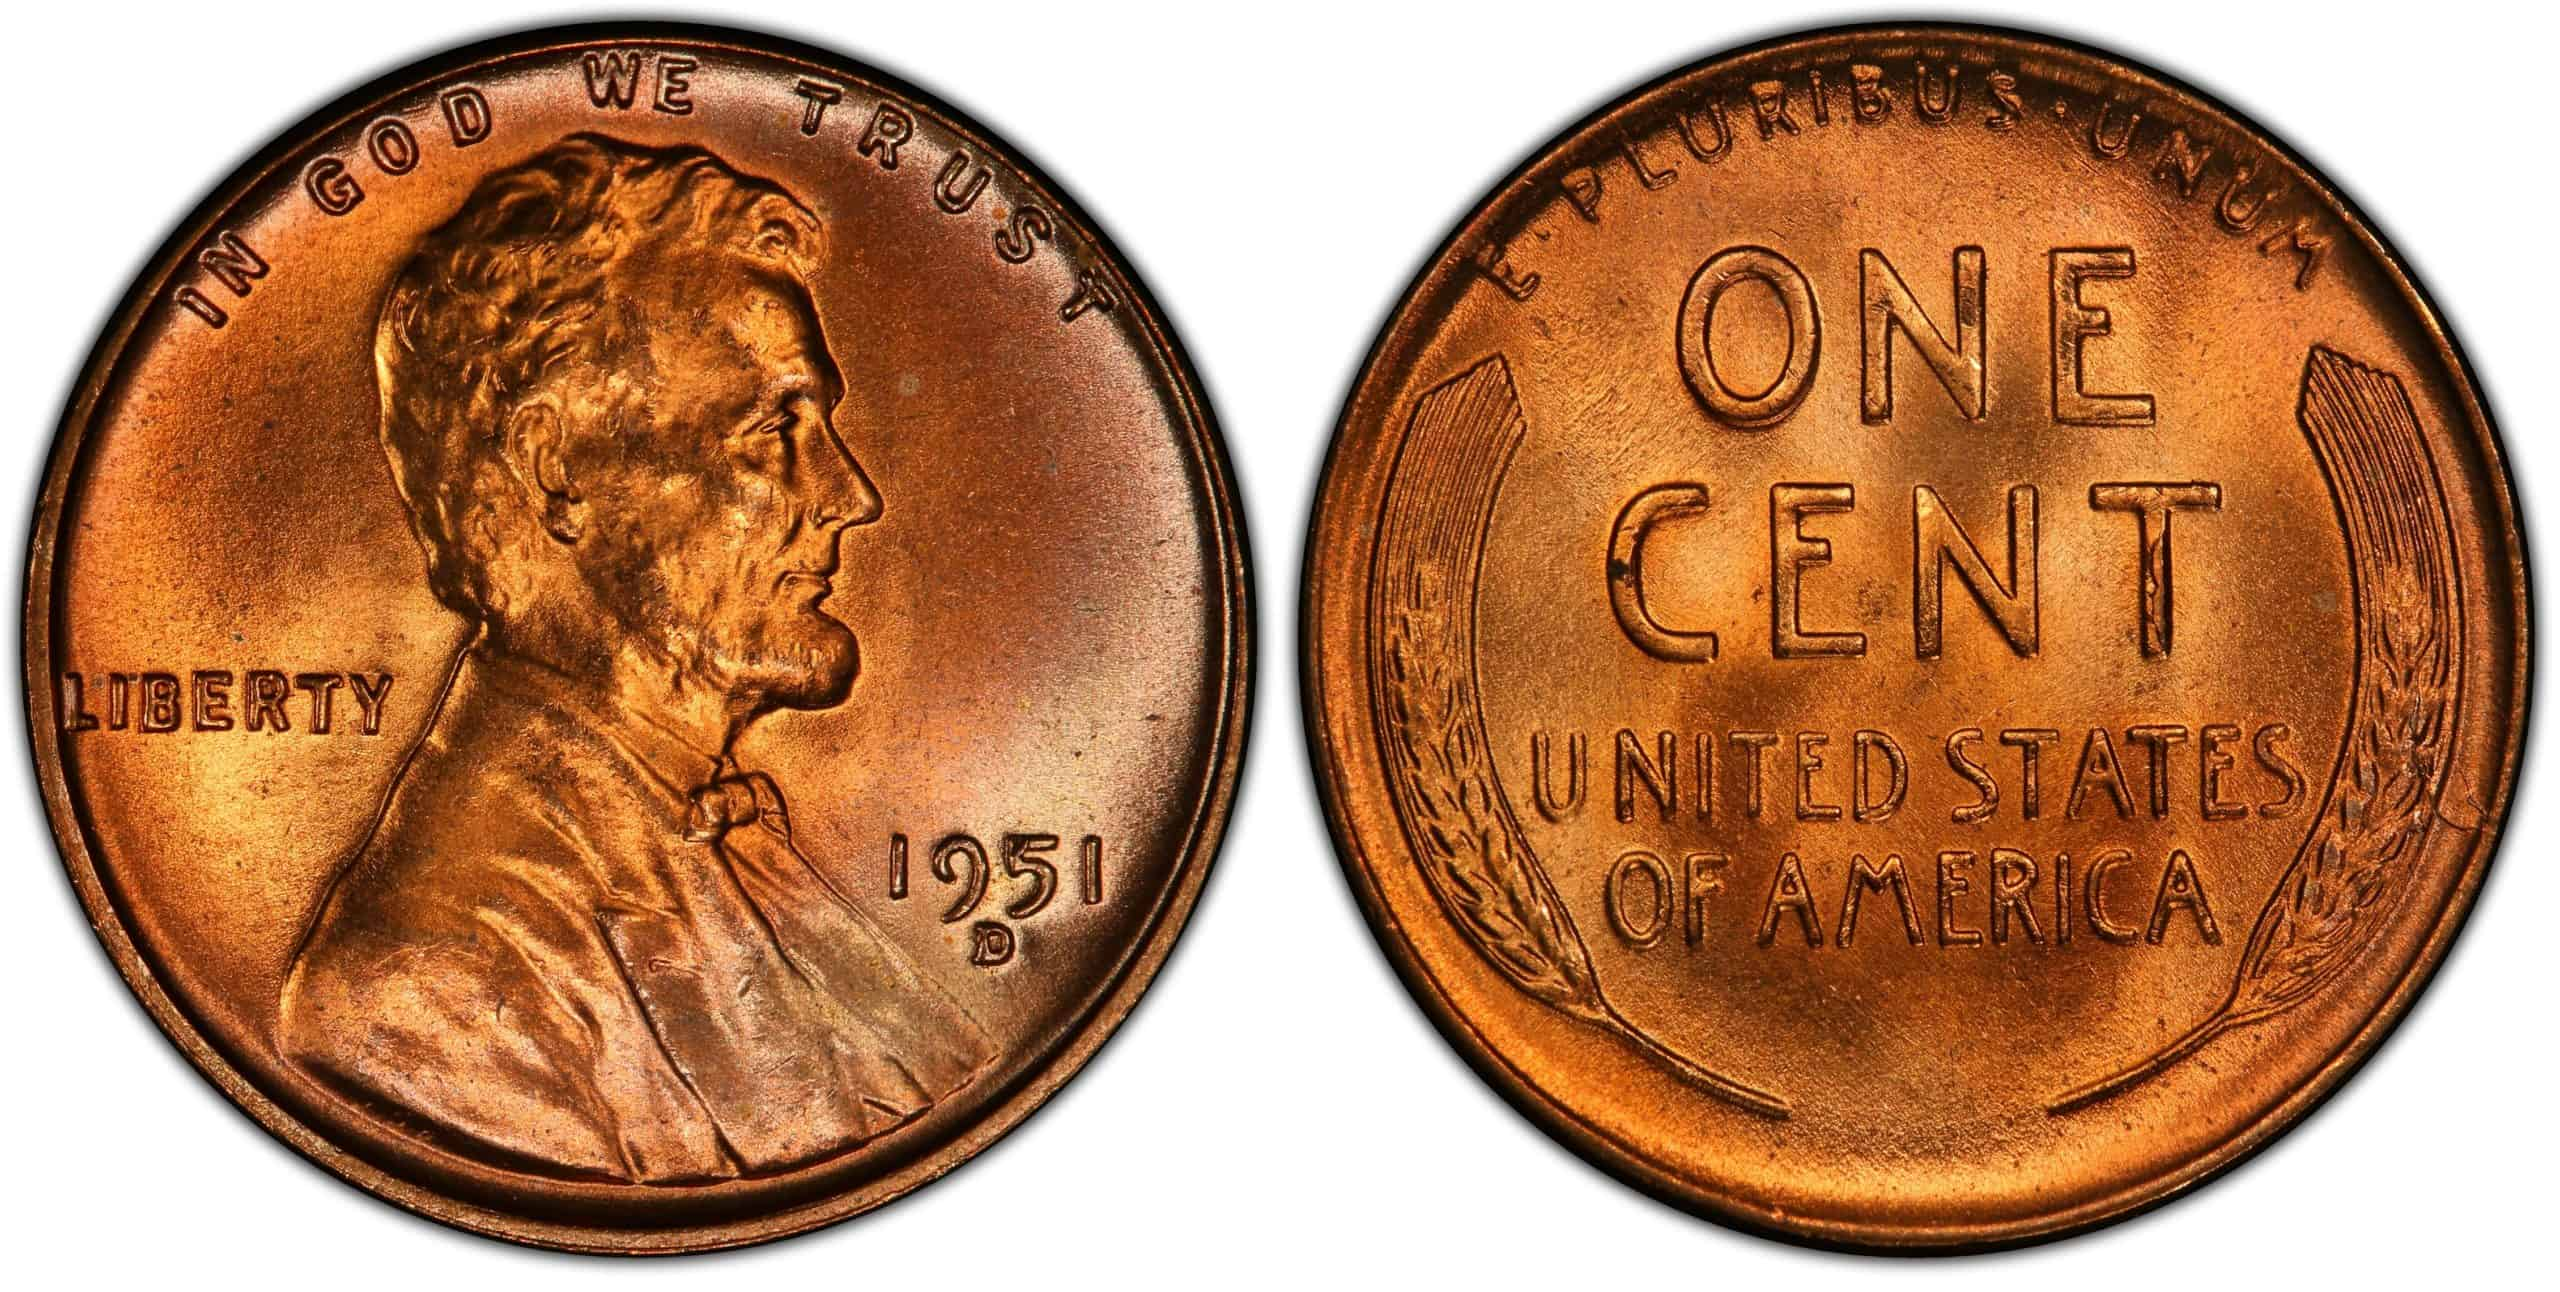 History of the 1951 wheat penny